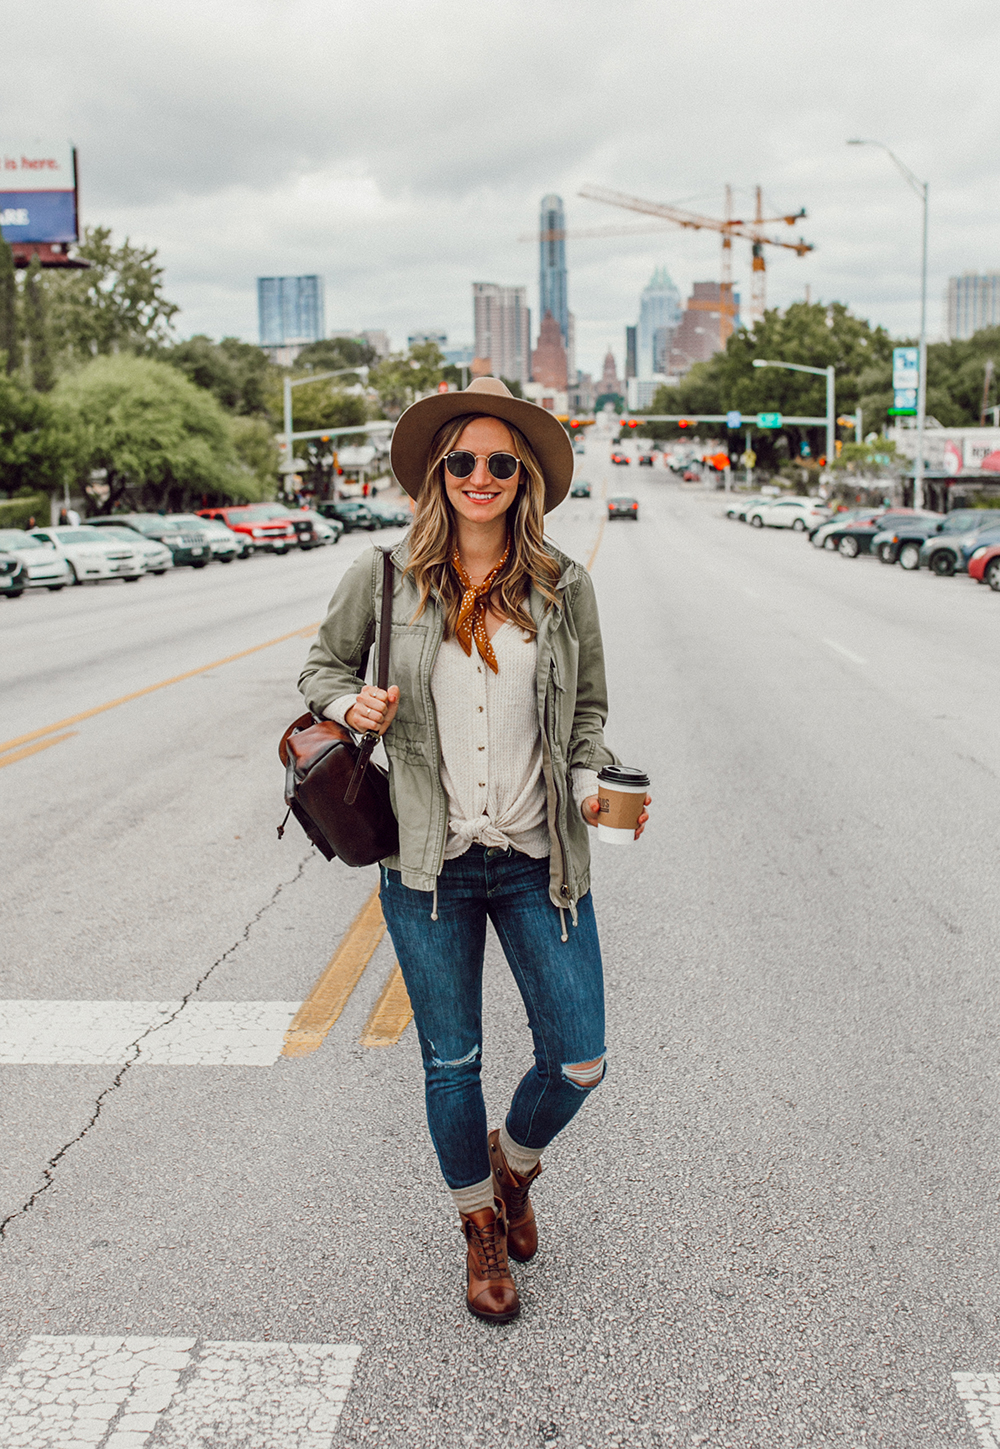 livvyland-blog-olivia-watson-austin-texas-fashion-style-blog-combat-boots-fall-outfit-inspiration-patricia-nash-3